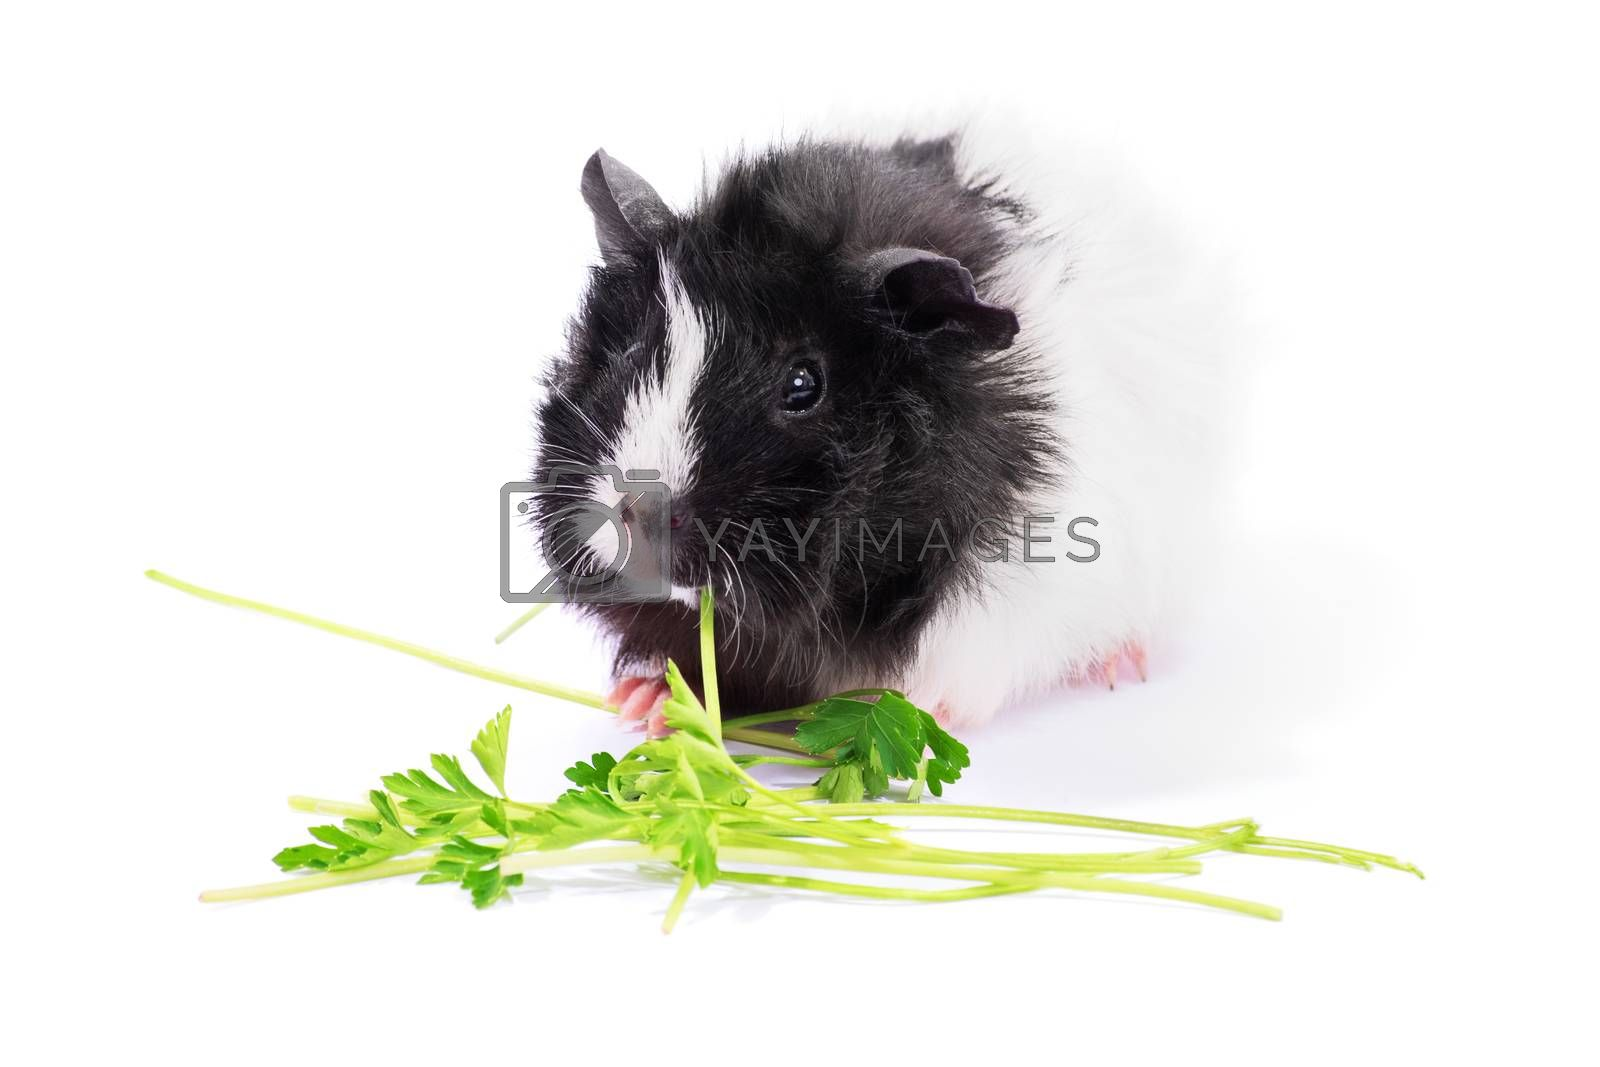 Cute black and white guinea pig eating parsley, isolated on white background.